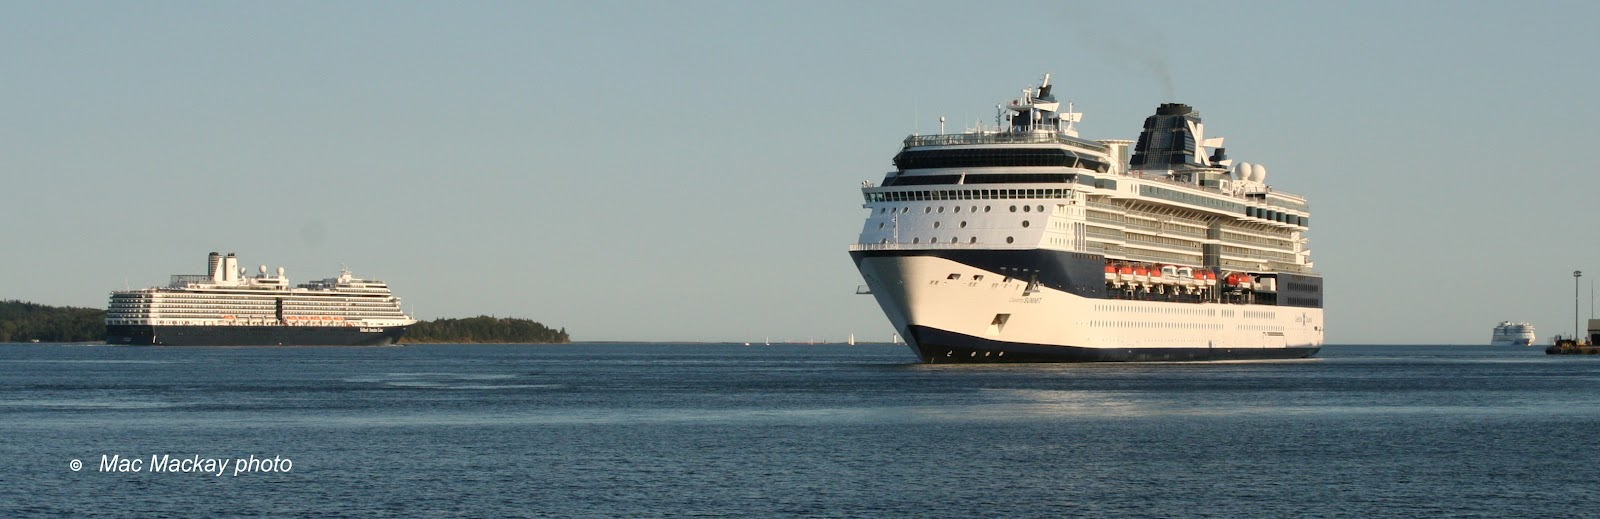 Flynn Cruiseport Boston Cruise Schedule